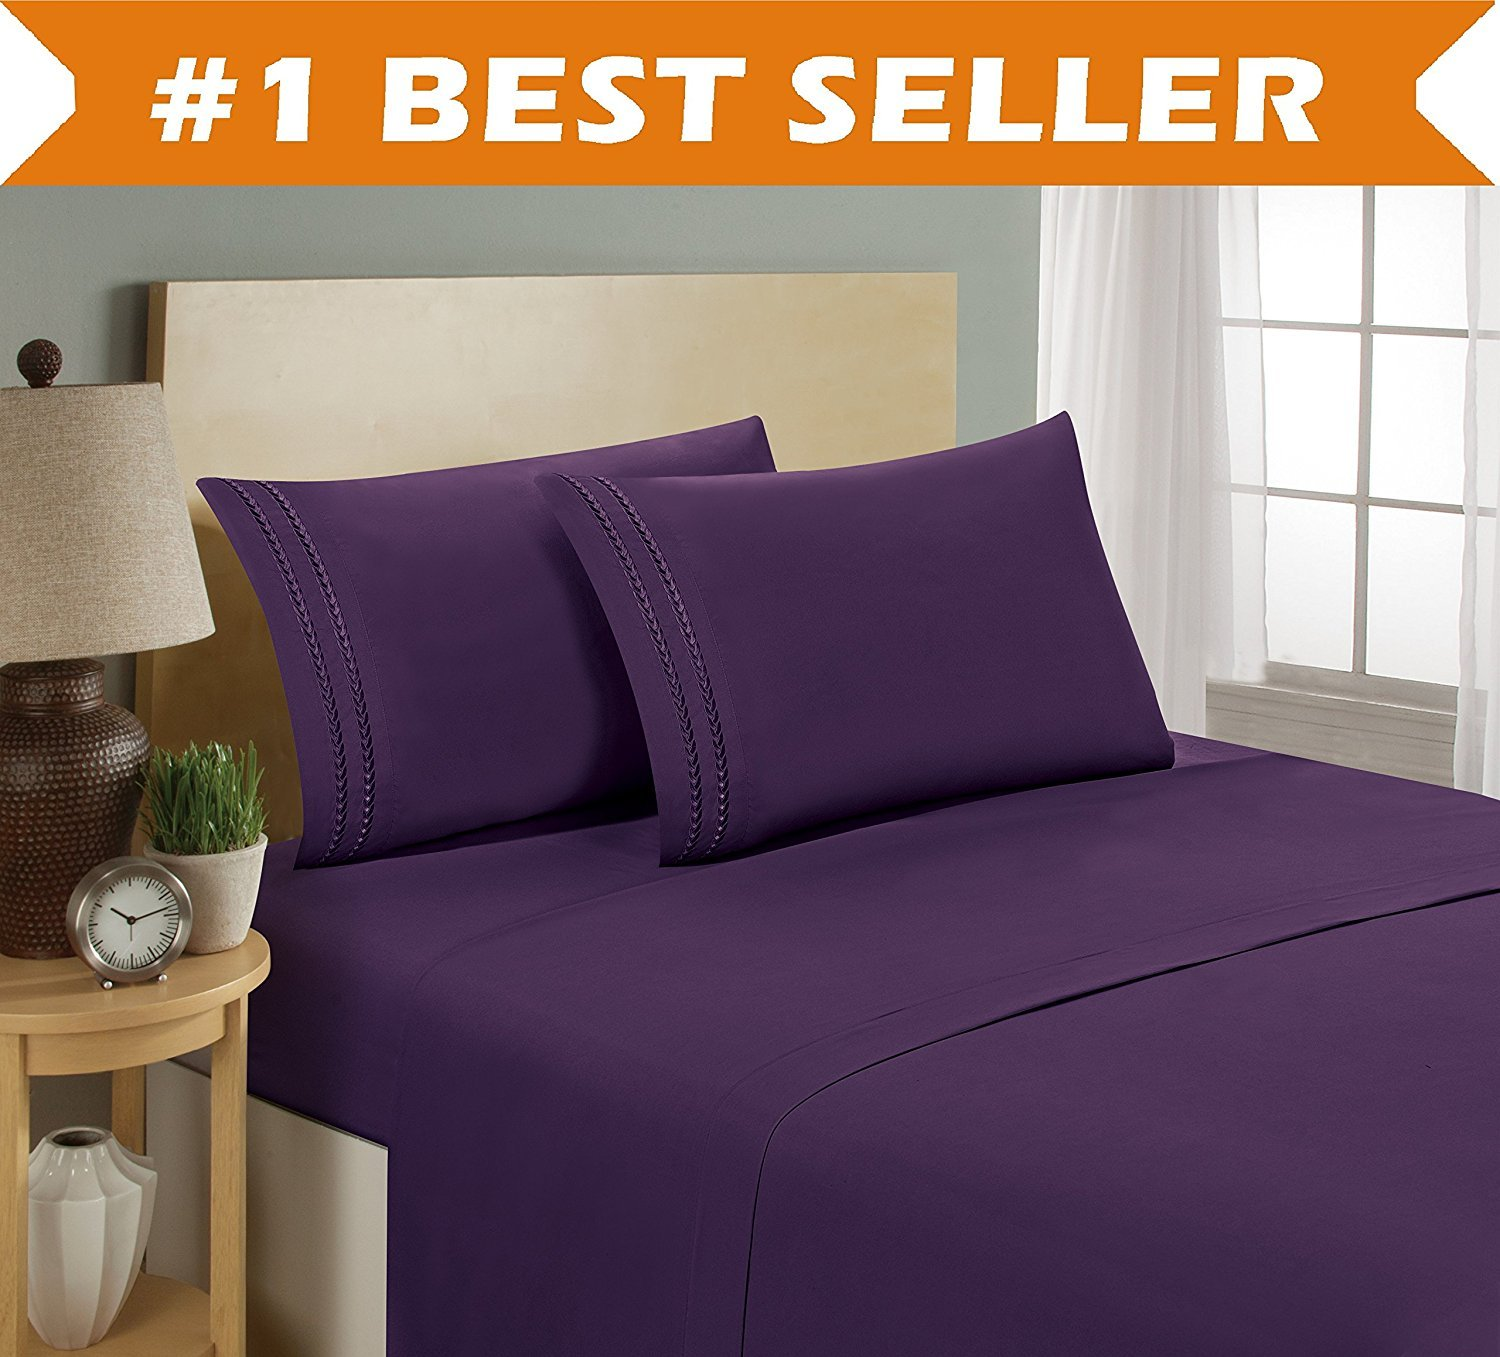 4-Piece Bed Sheet set, Deep Pocket, HypoAllergenic - Queen, Purple